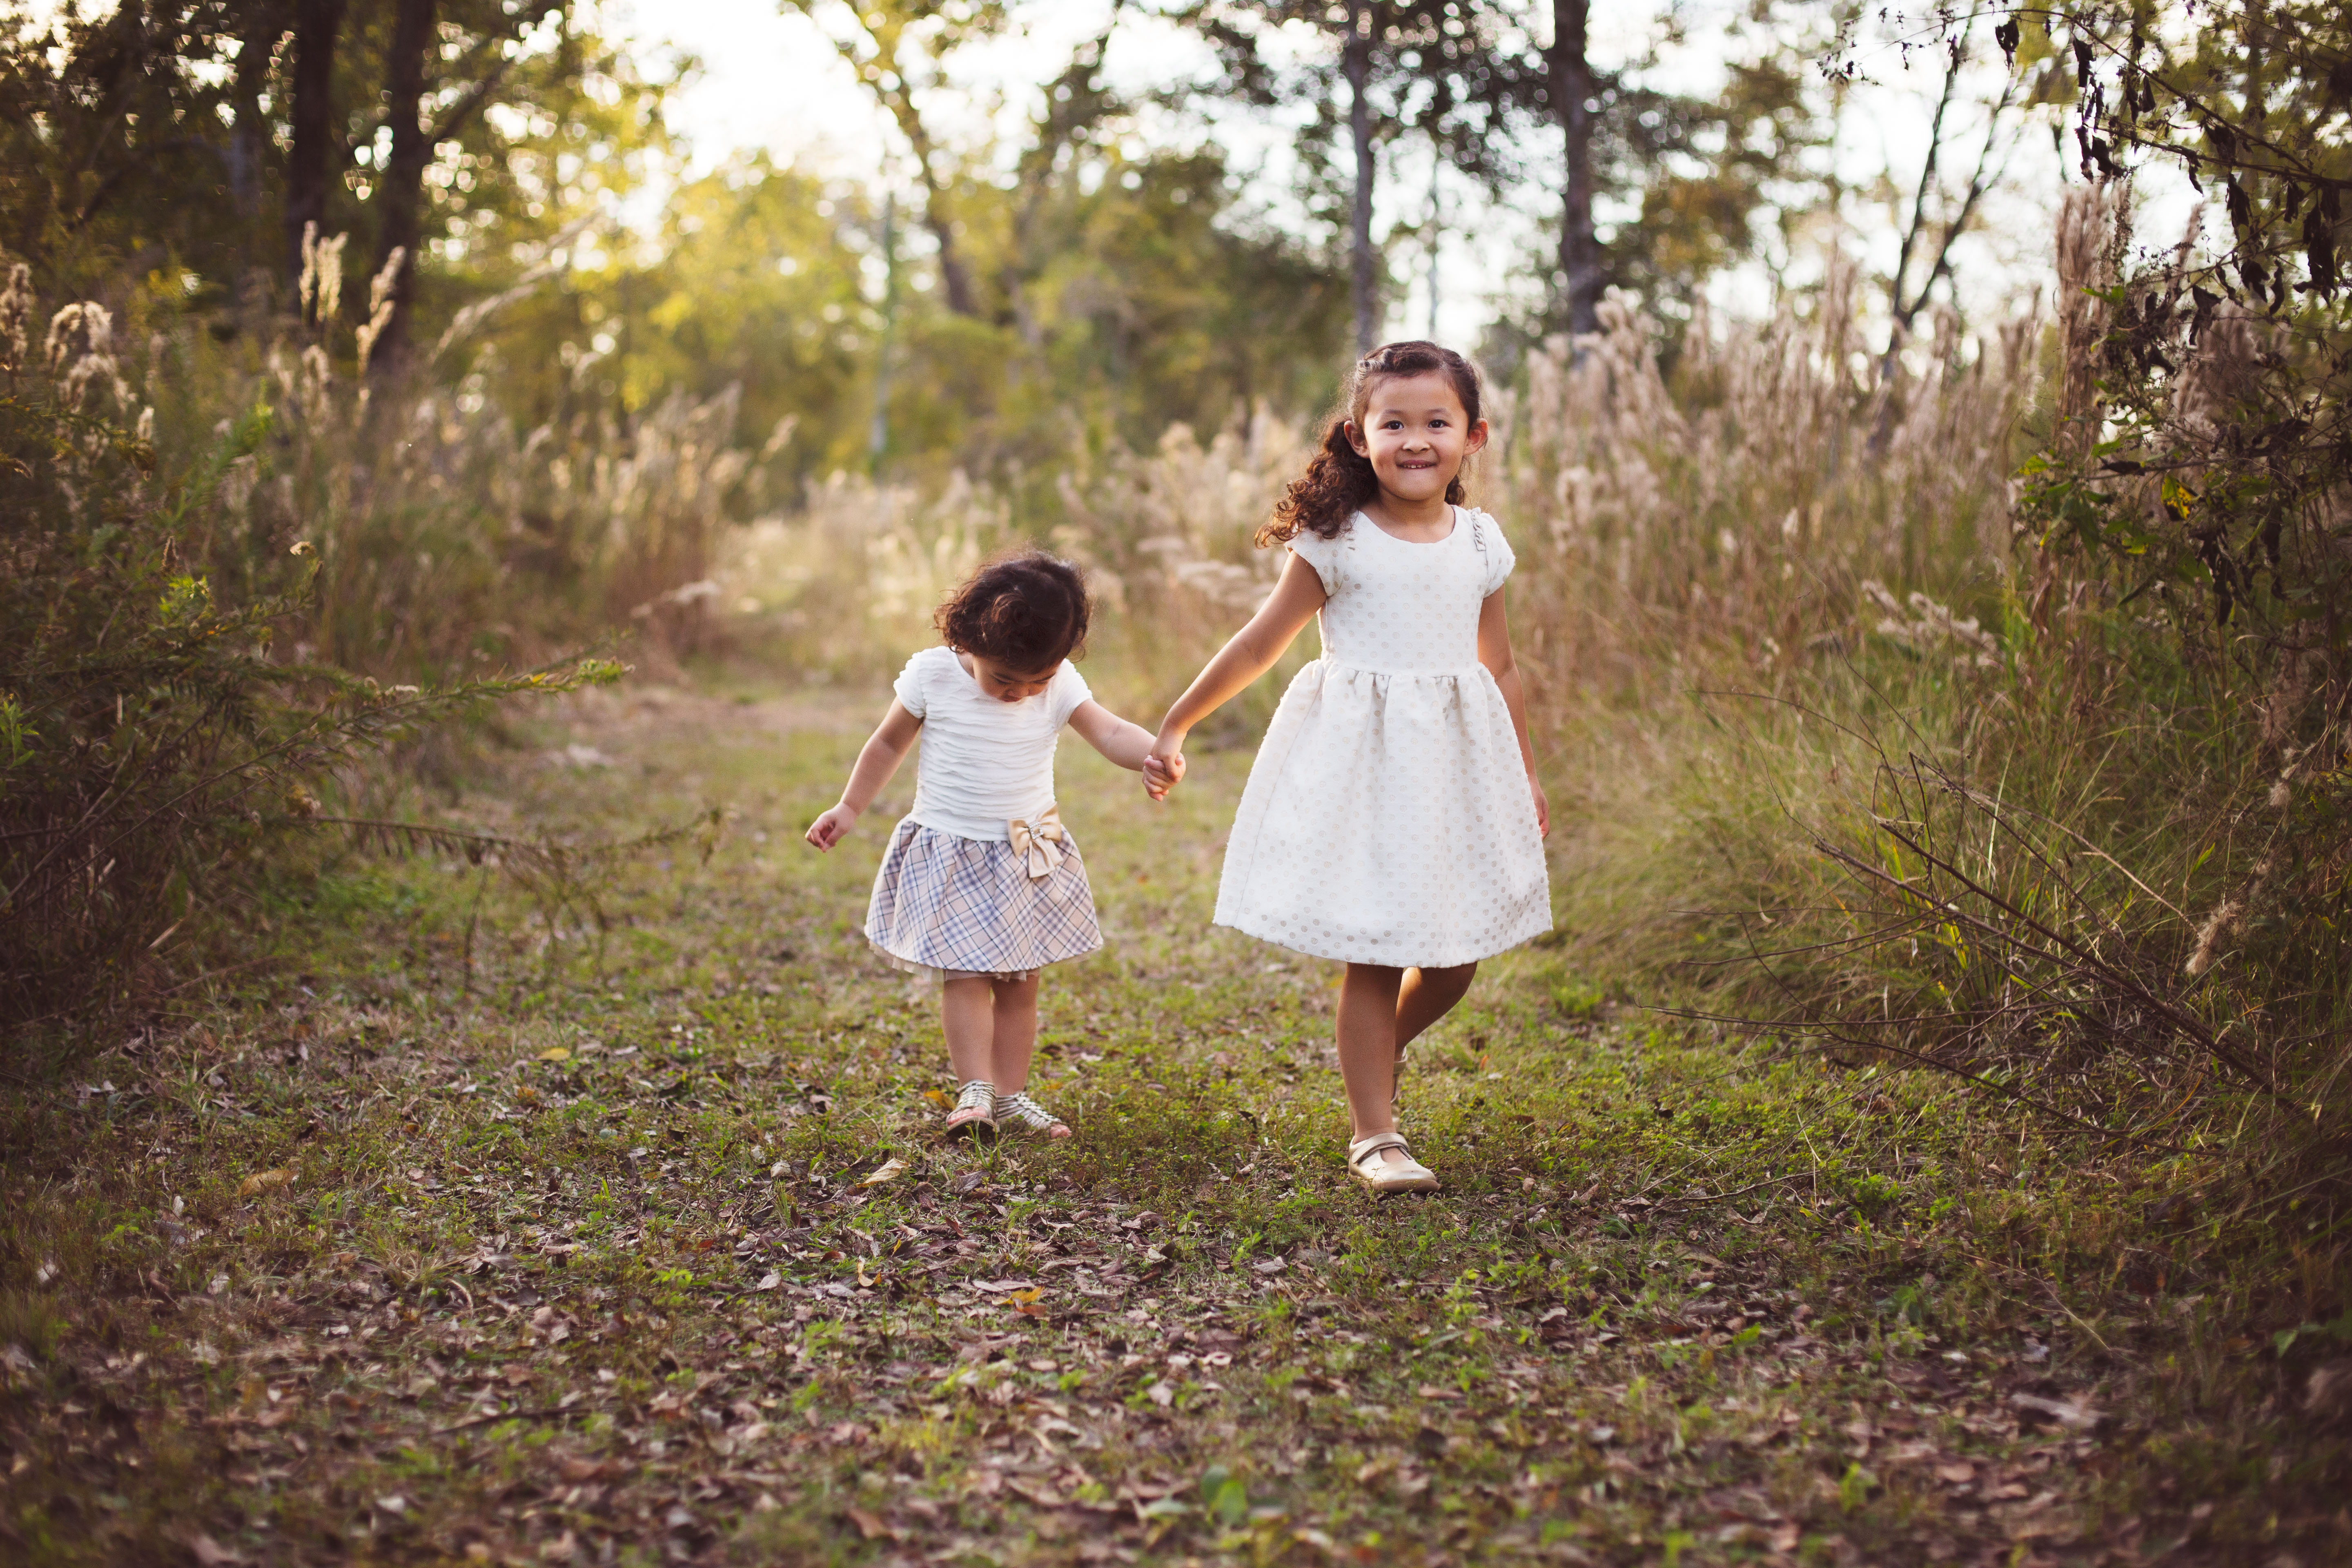 Tips for taking family photos with children